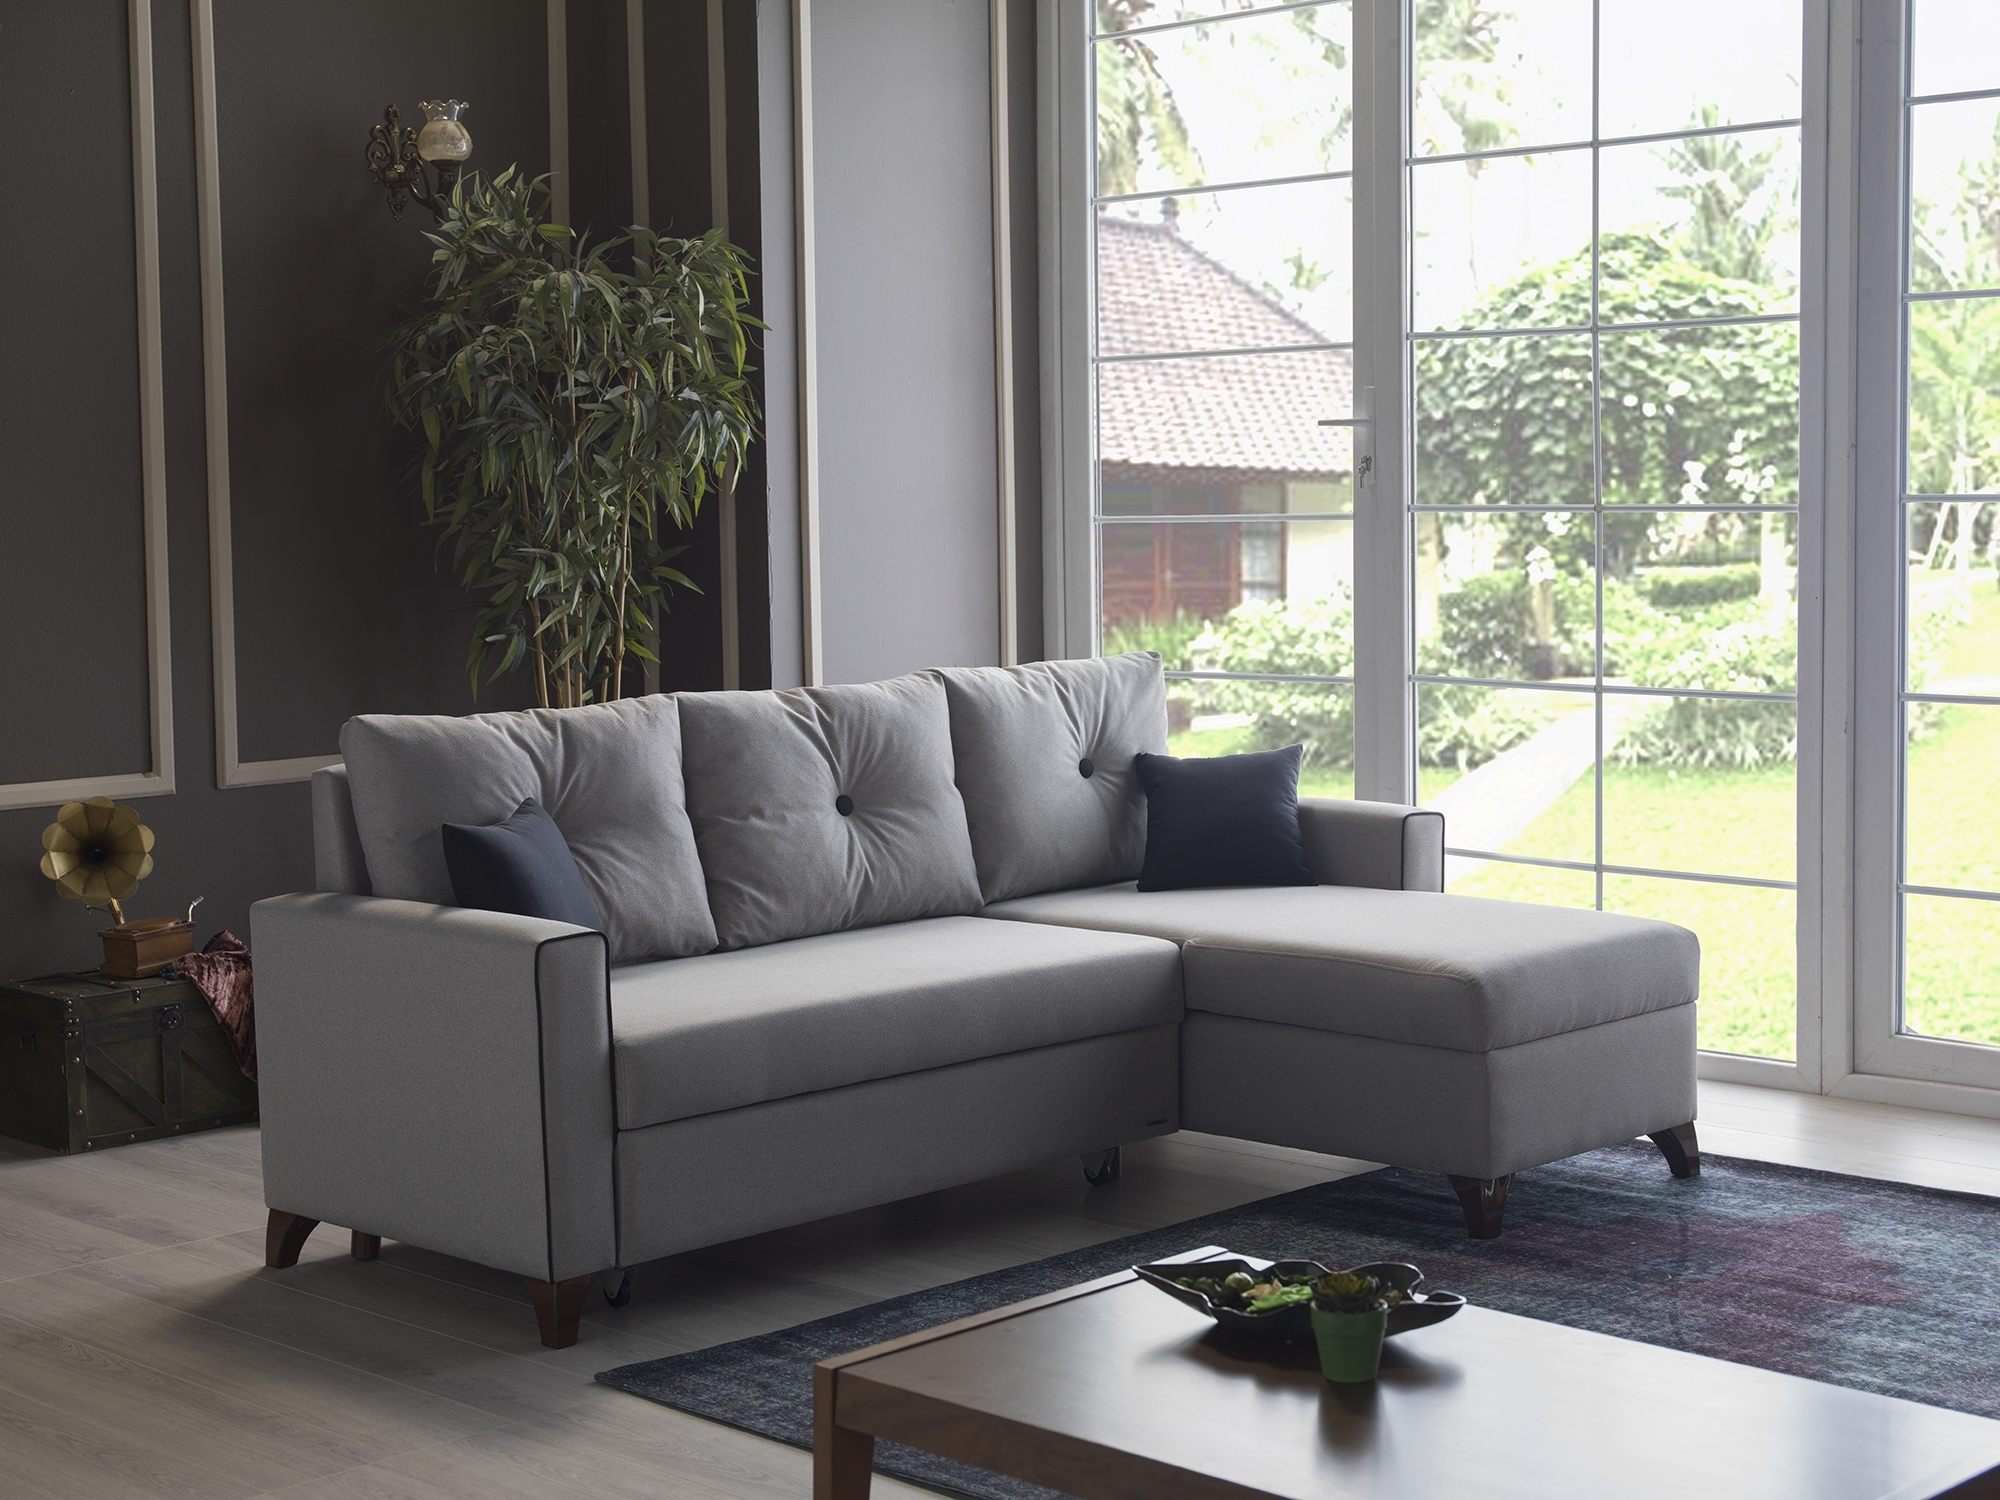 Sealy Sectional Sofa Bed | Baci Living Room intended for Lucy Dark Grey 2 Piece Sleeper Sectionals With Laf Chaise (Image 23 of 30)